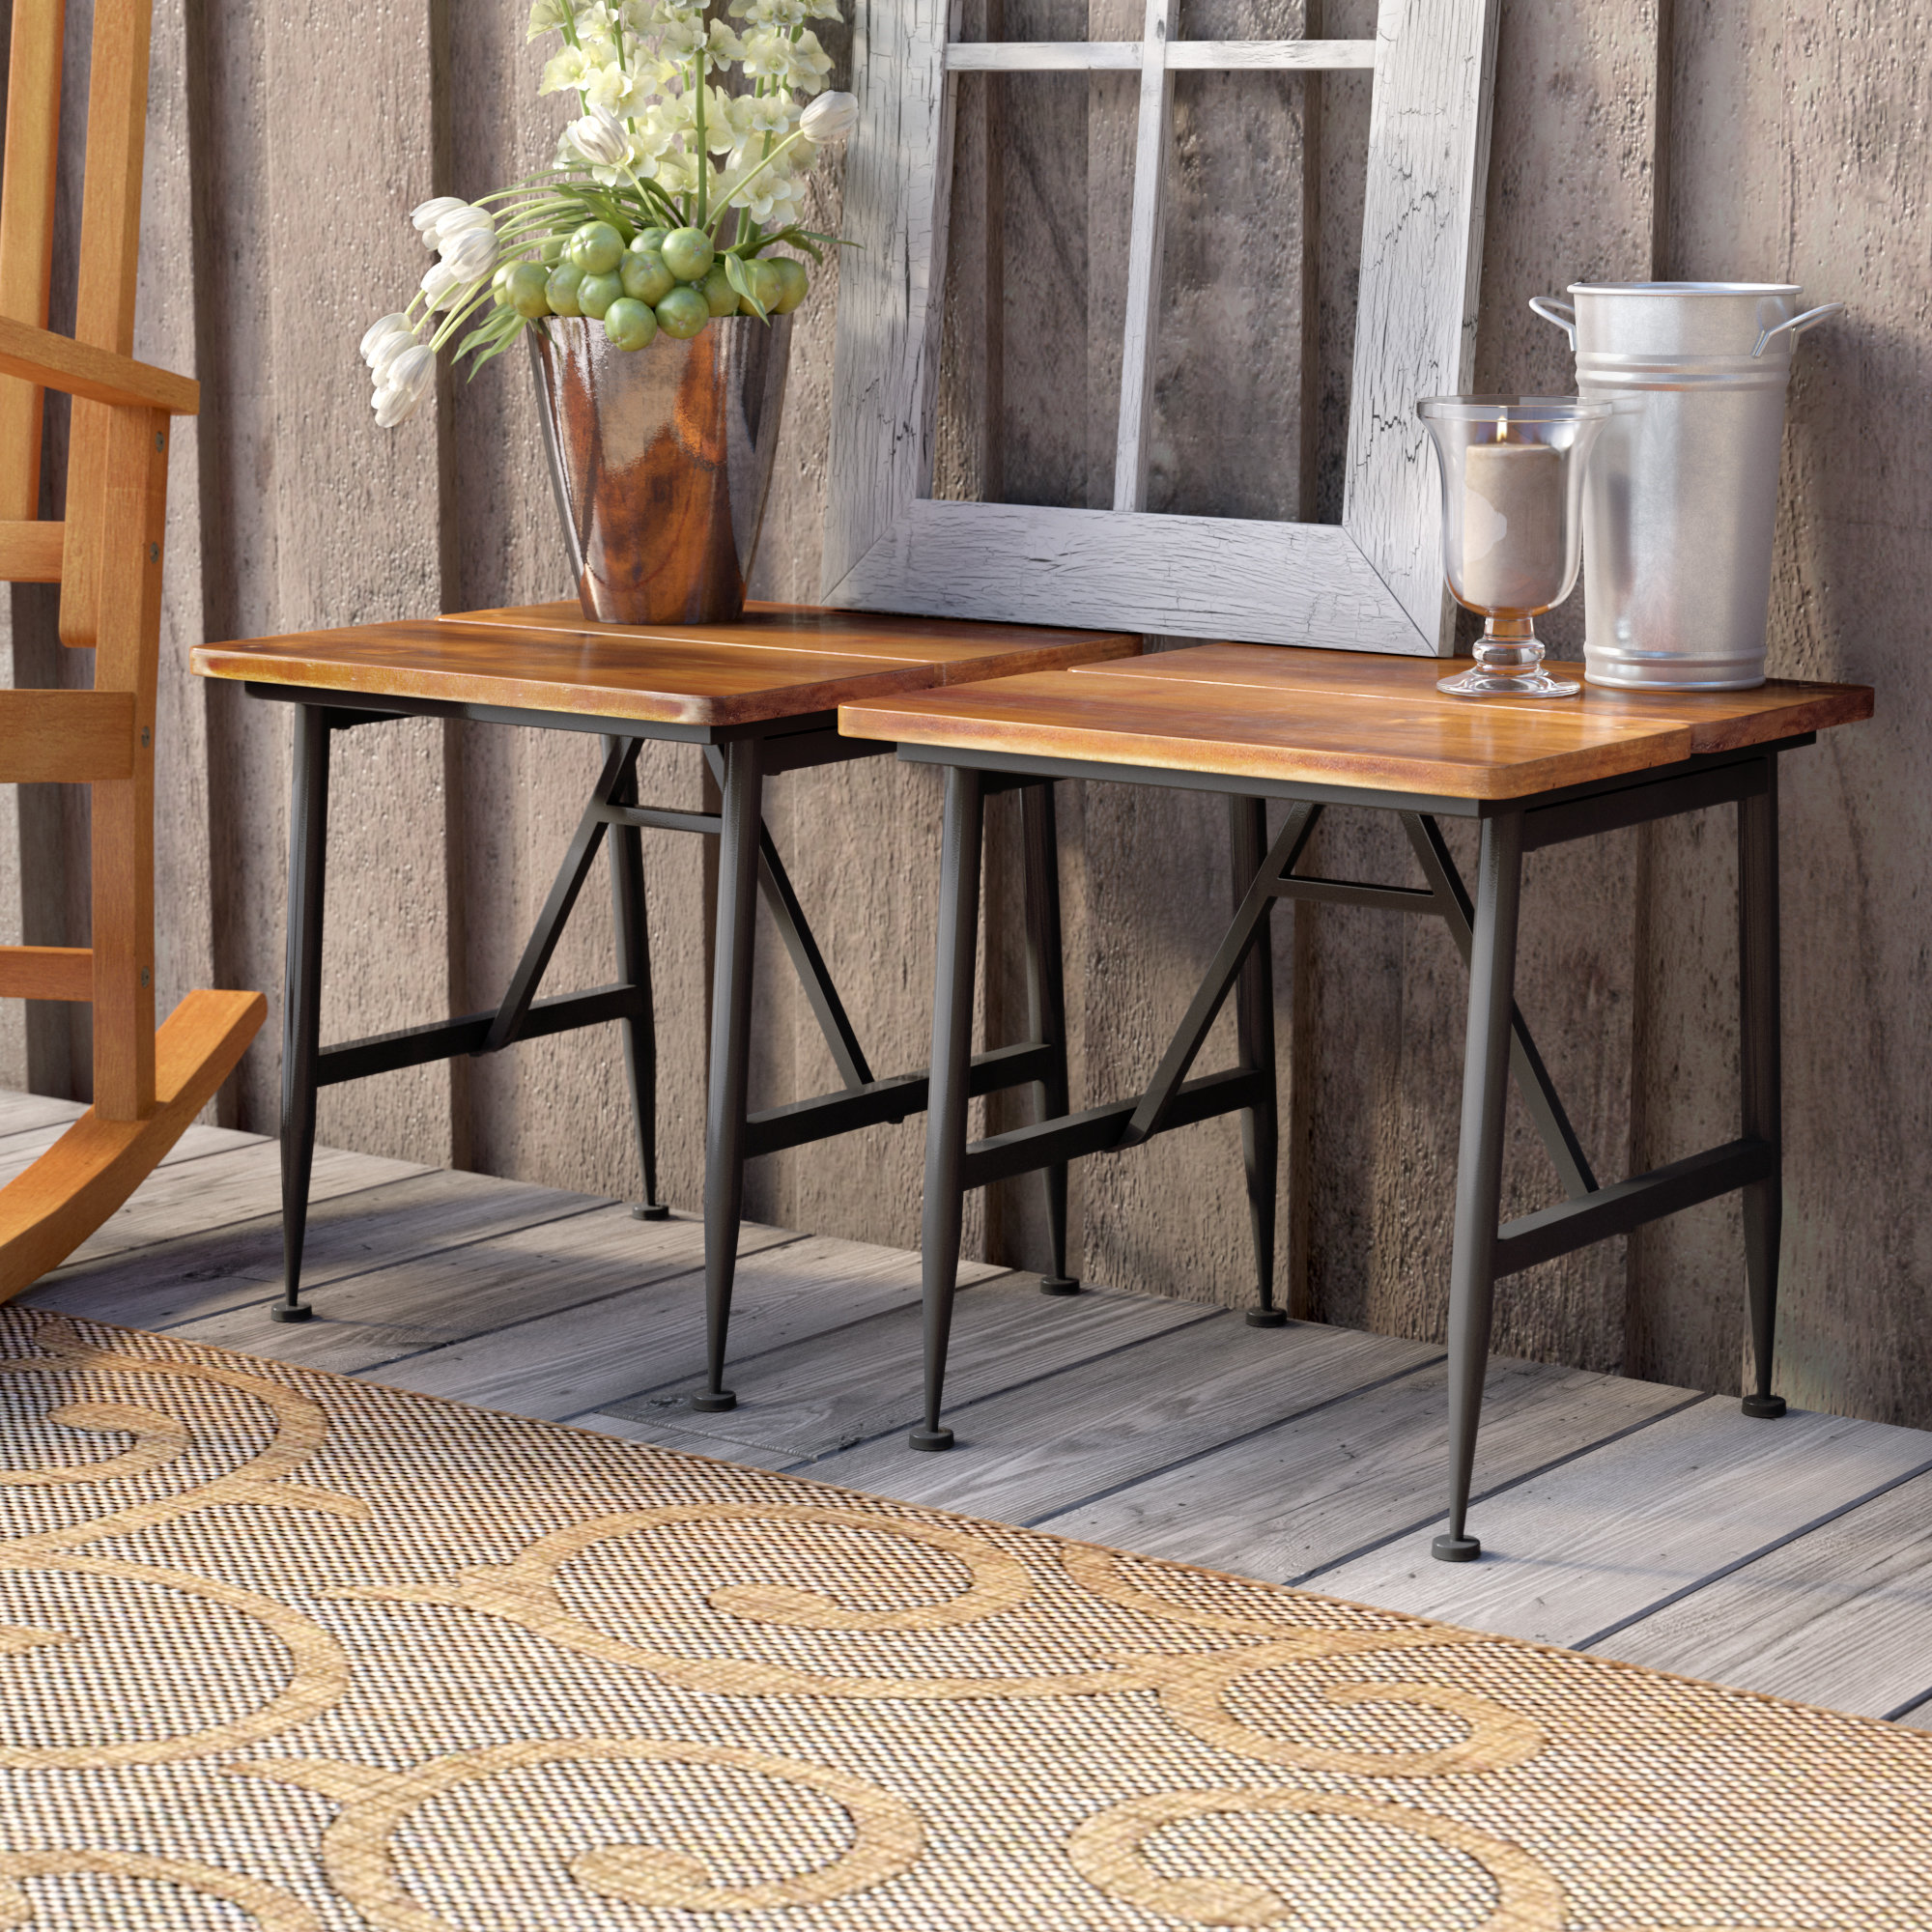 gracie oaks frankston outdoor wood accent table set reviews round cardboard concrete coffee drop leaf kitchen and chairs three legged pier one bedroom sets queen size mattress